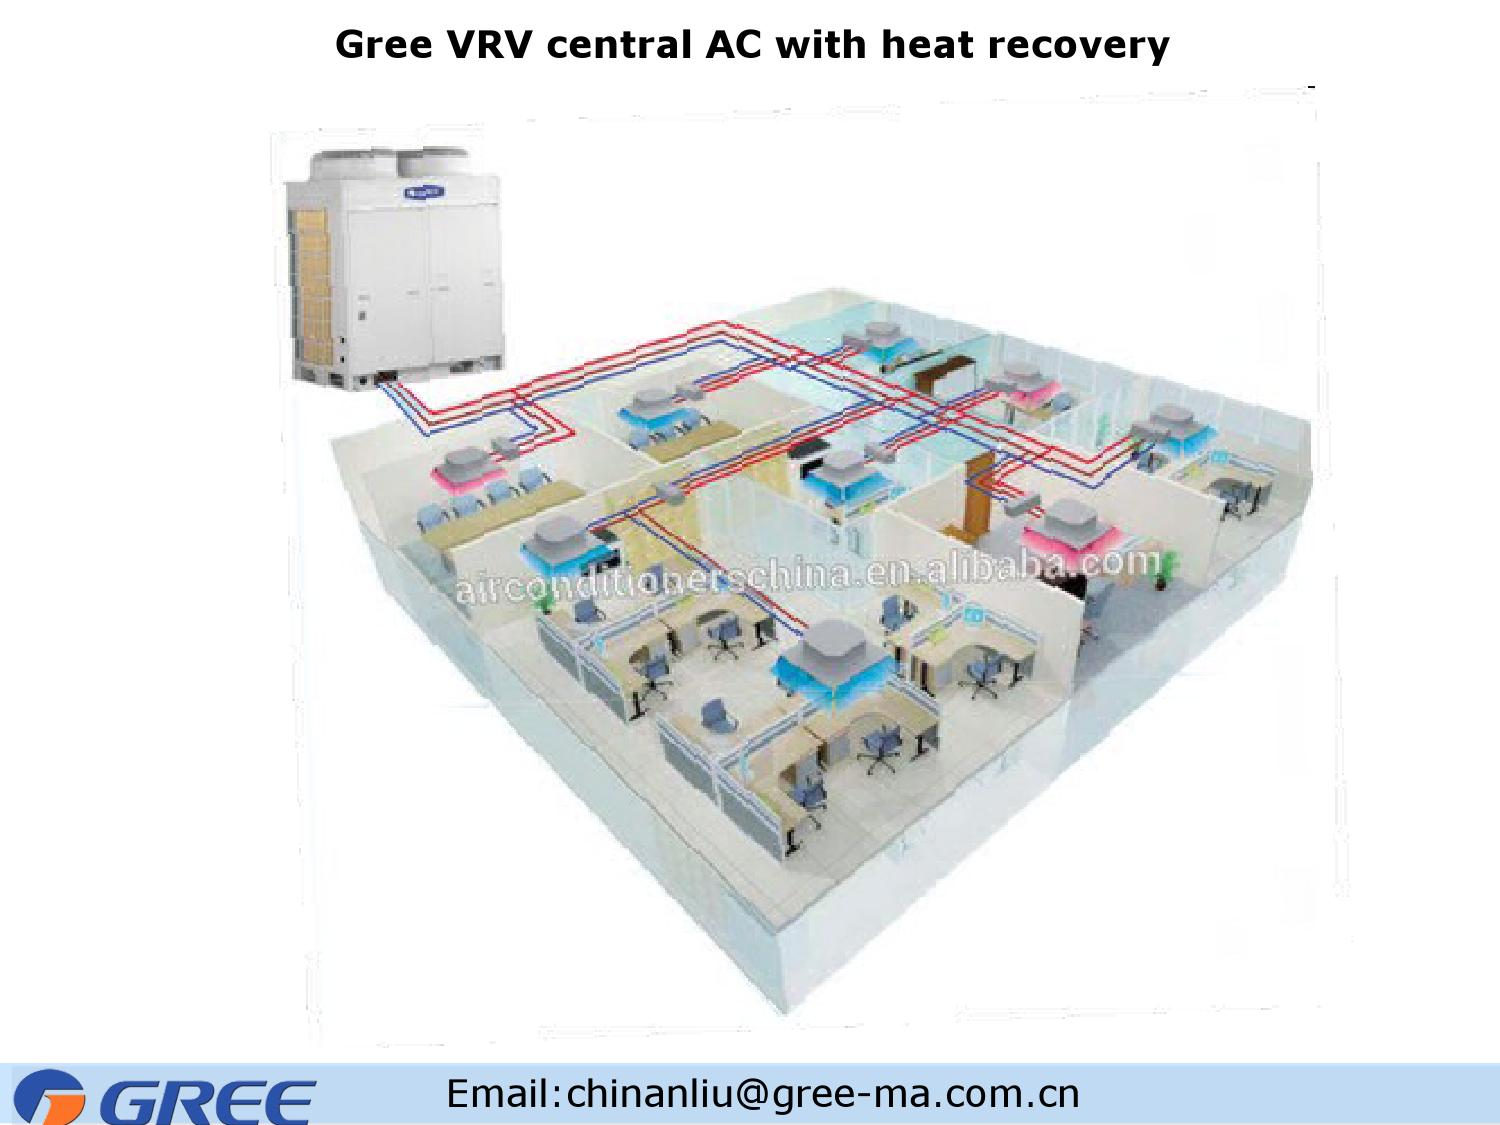 Gree vrv central ac with heat recovery by Gree - issuu